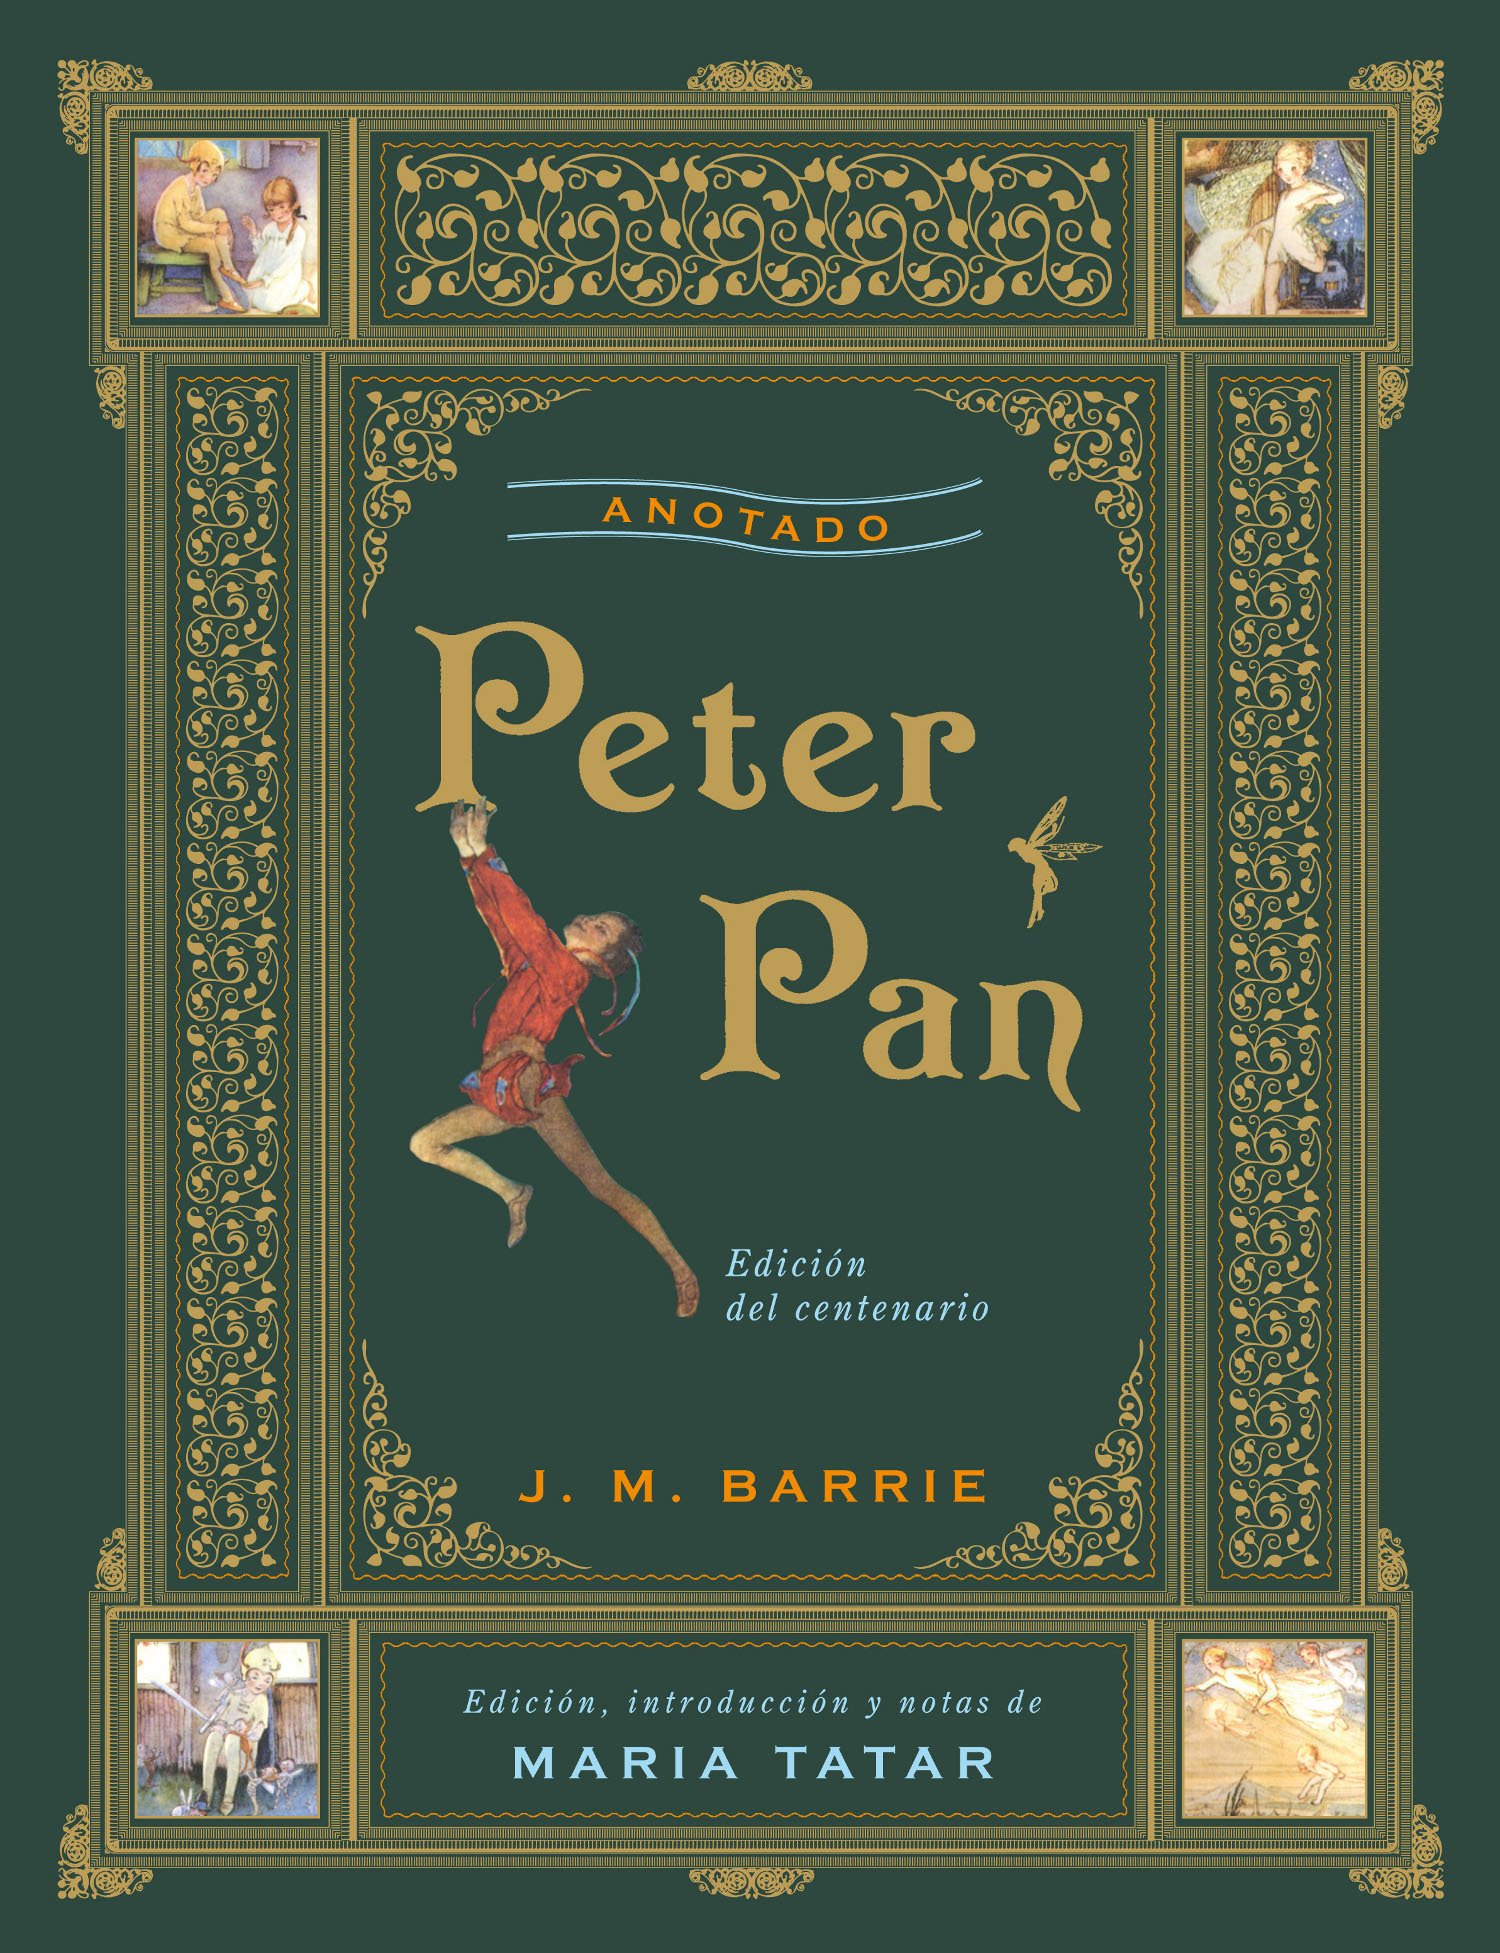 Peter Pan anotado (Grandes libros) Tapa dura – 9 oct 2013 J.M. Barrie Akal 8446038323 United Kingdom